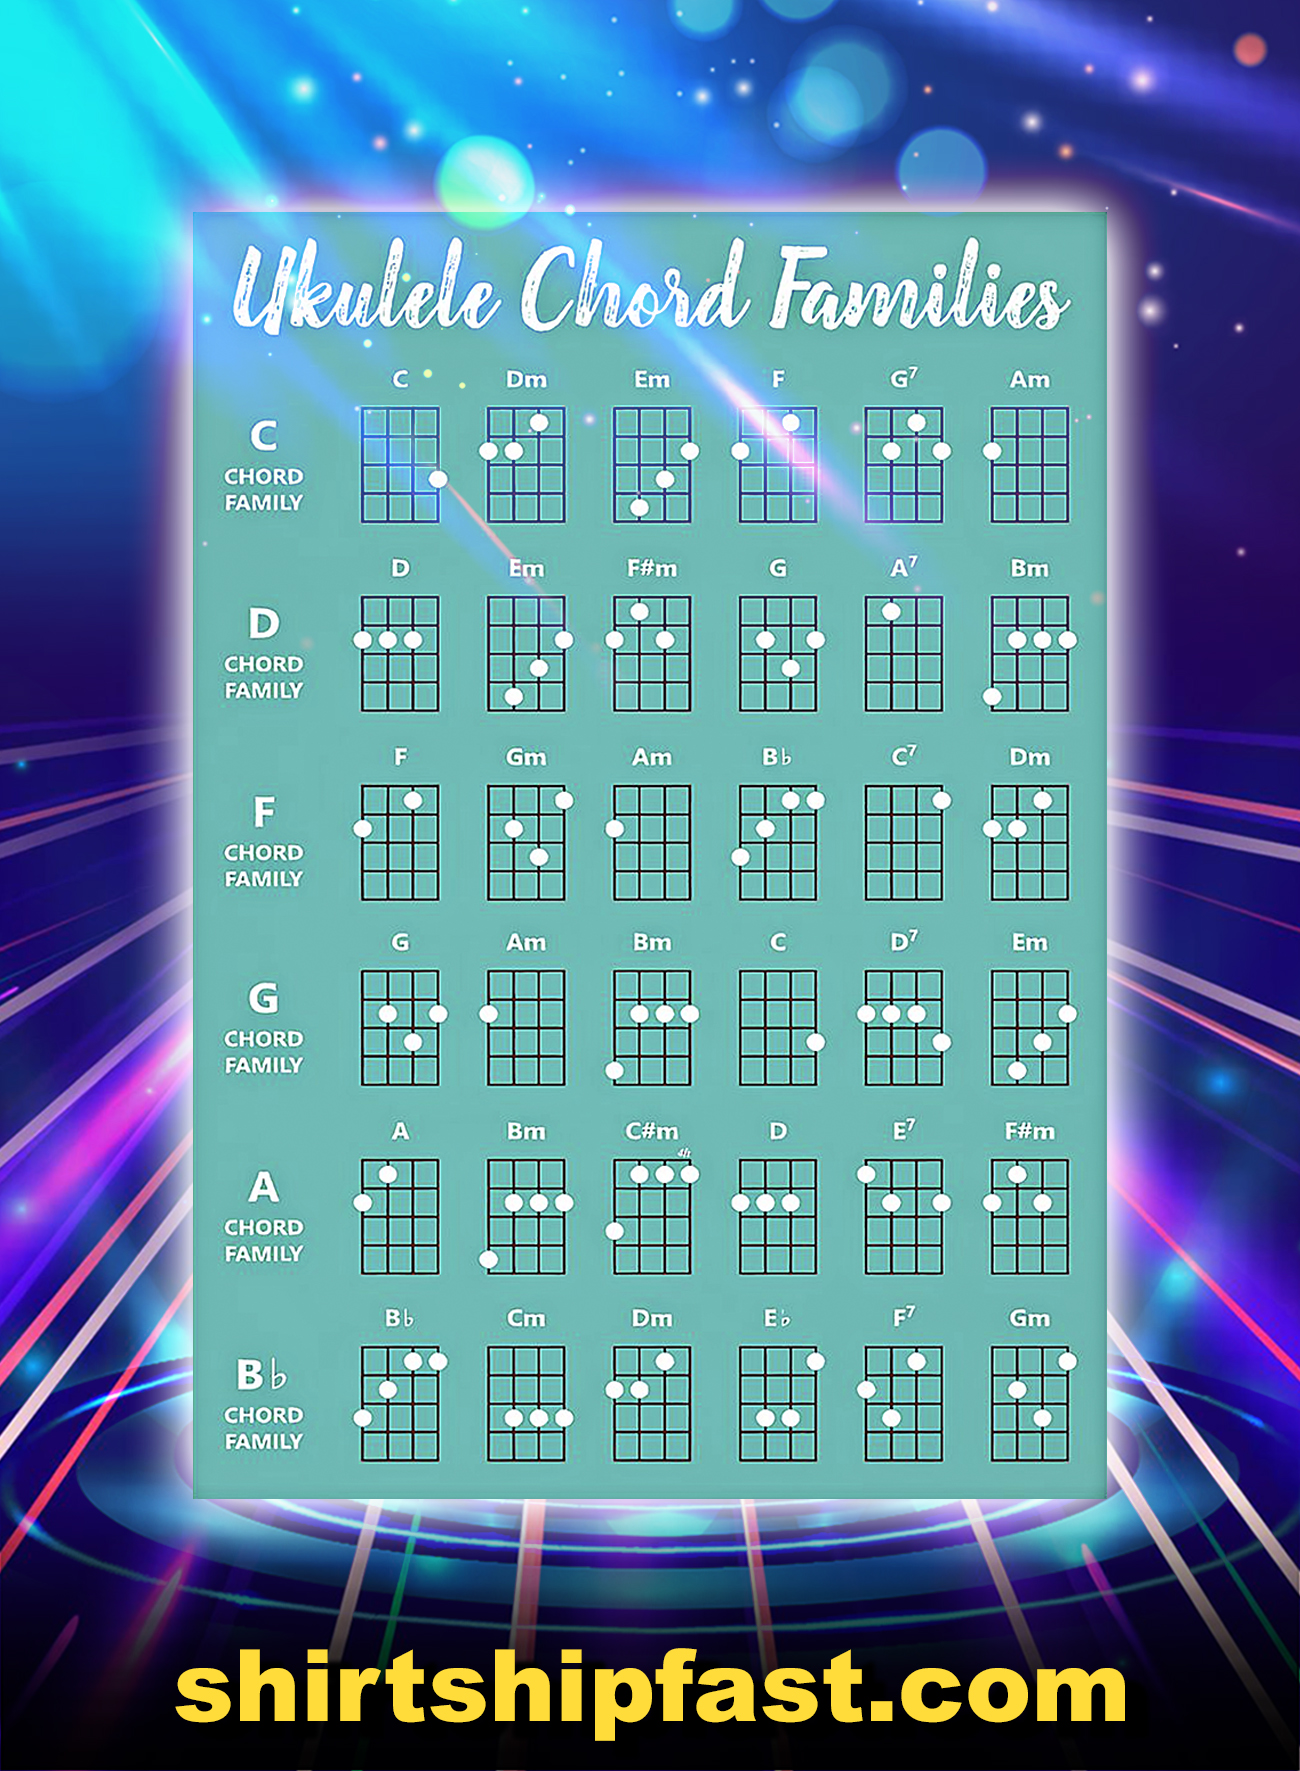 Ukulele Chord Families Poster - A4